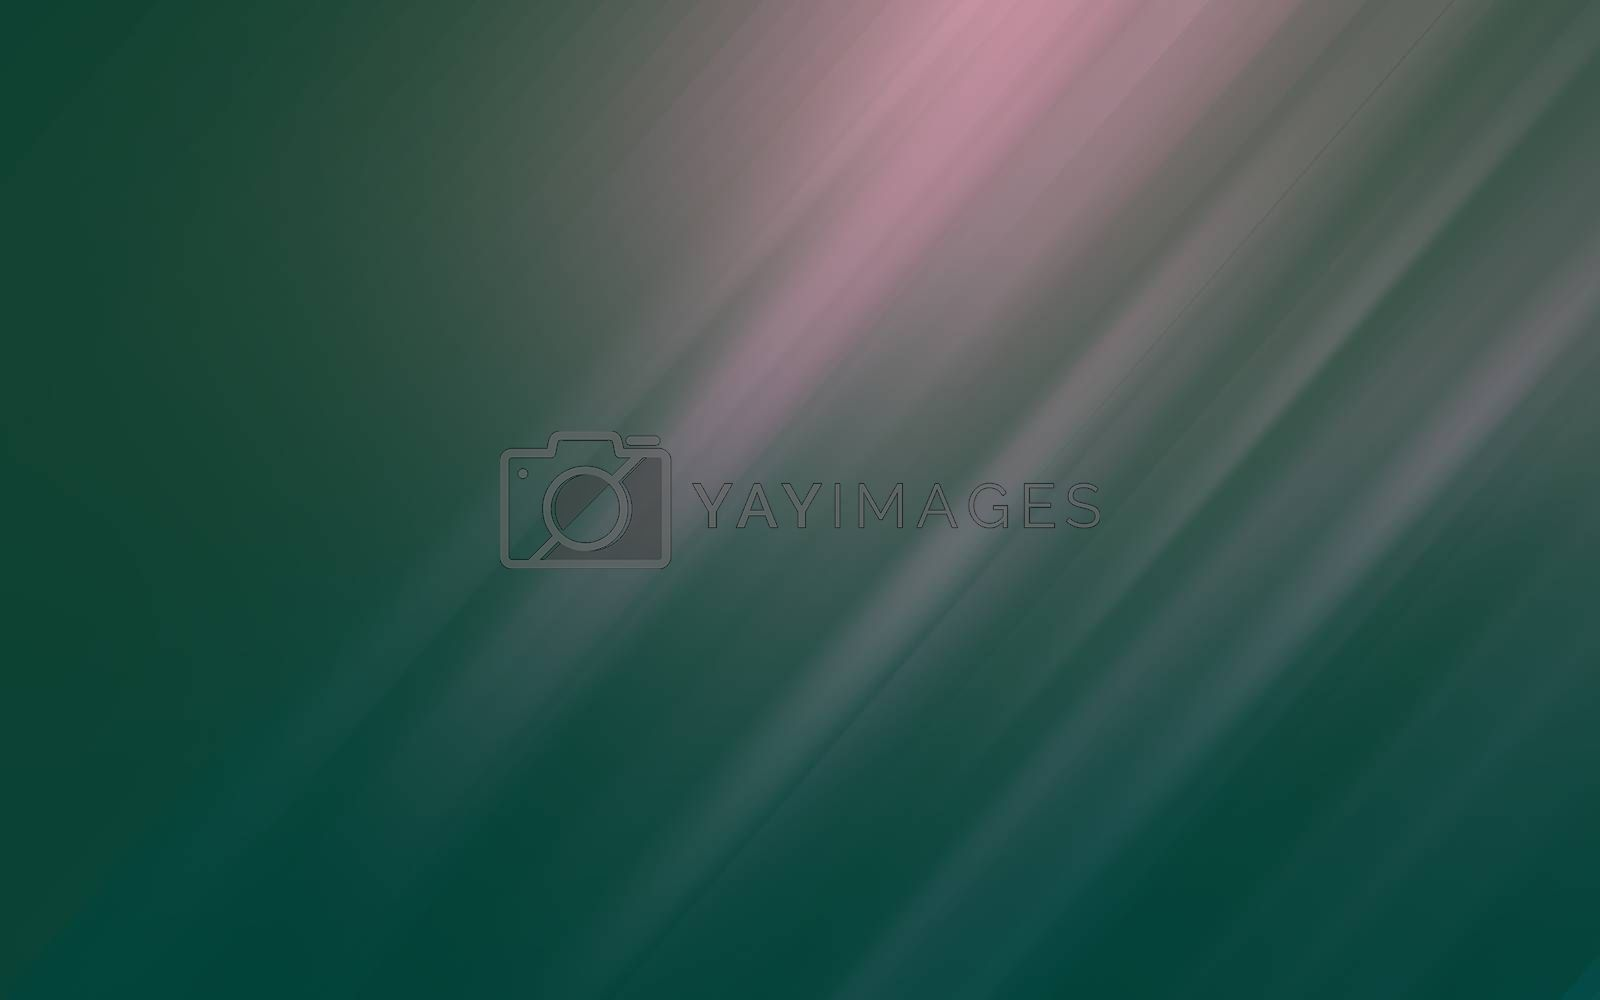 Royalty free image of motion blur abstract background by teerawit